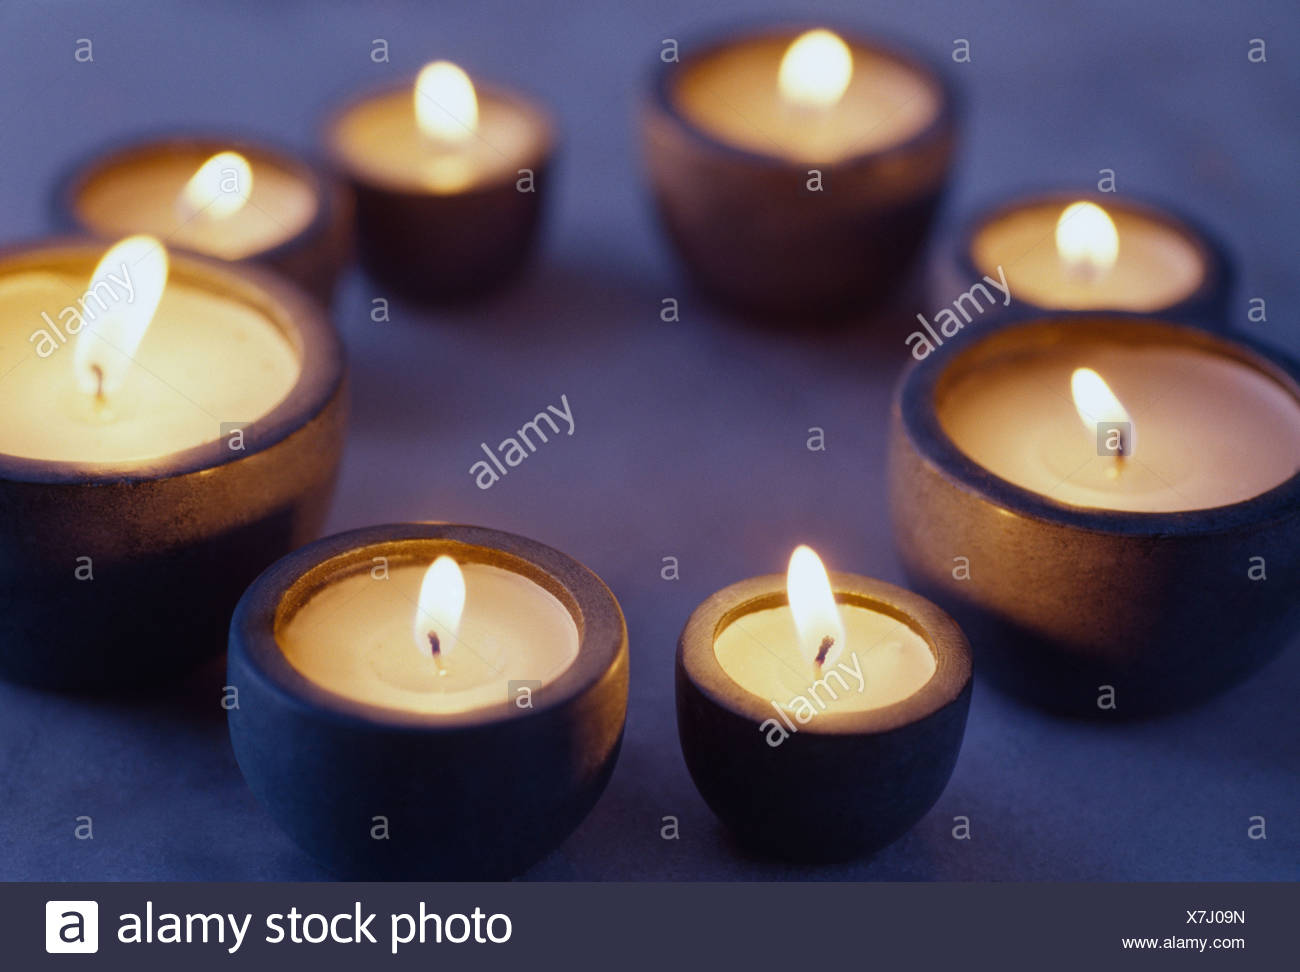 A circle of candles - Stock Image